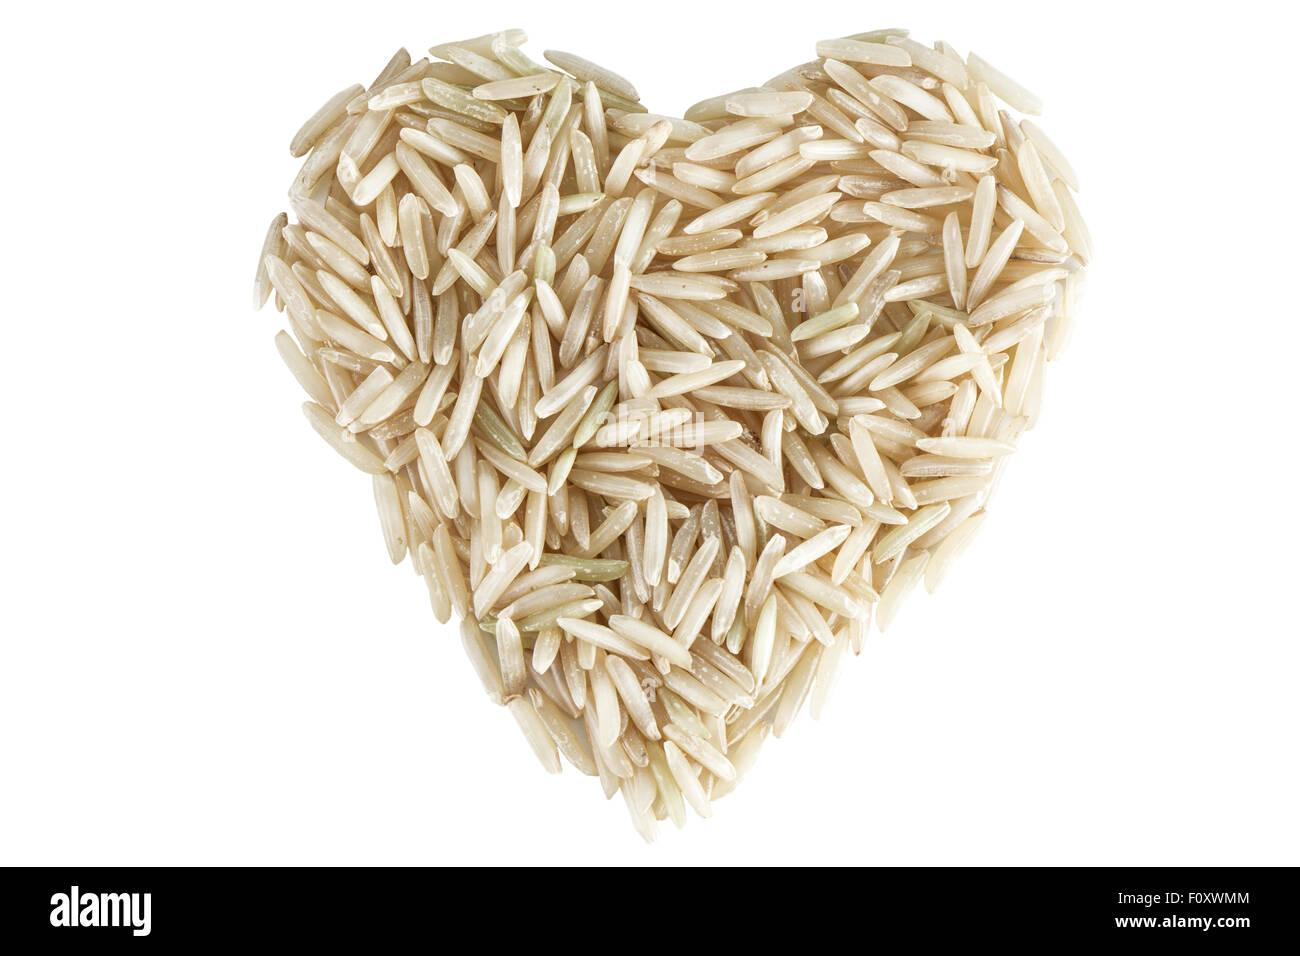 Heart shape made of wholegrain basmati rice viewed from above, isolated on white background. Stock Photo